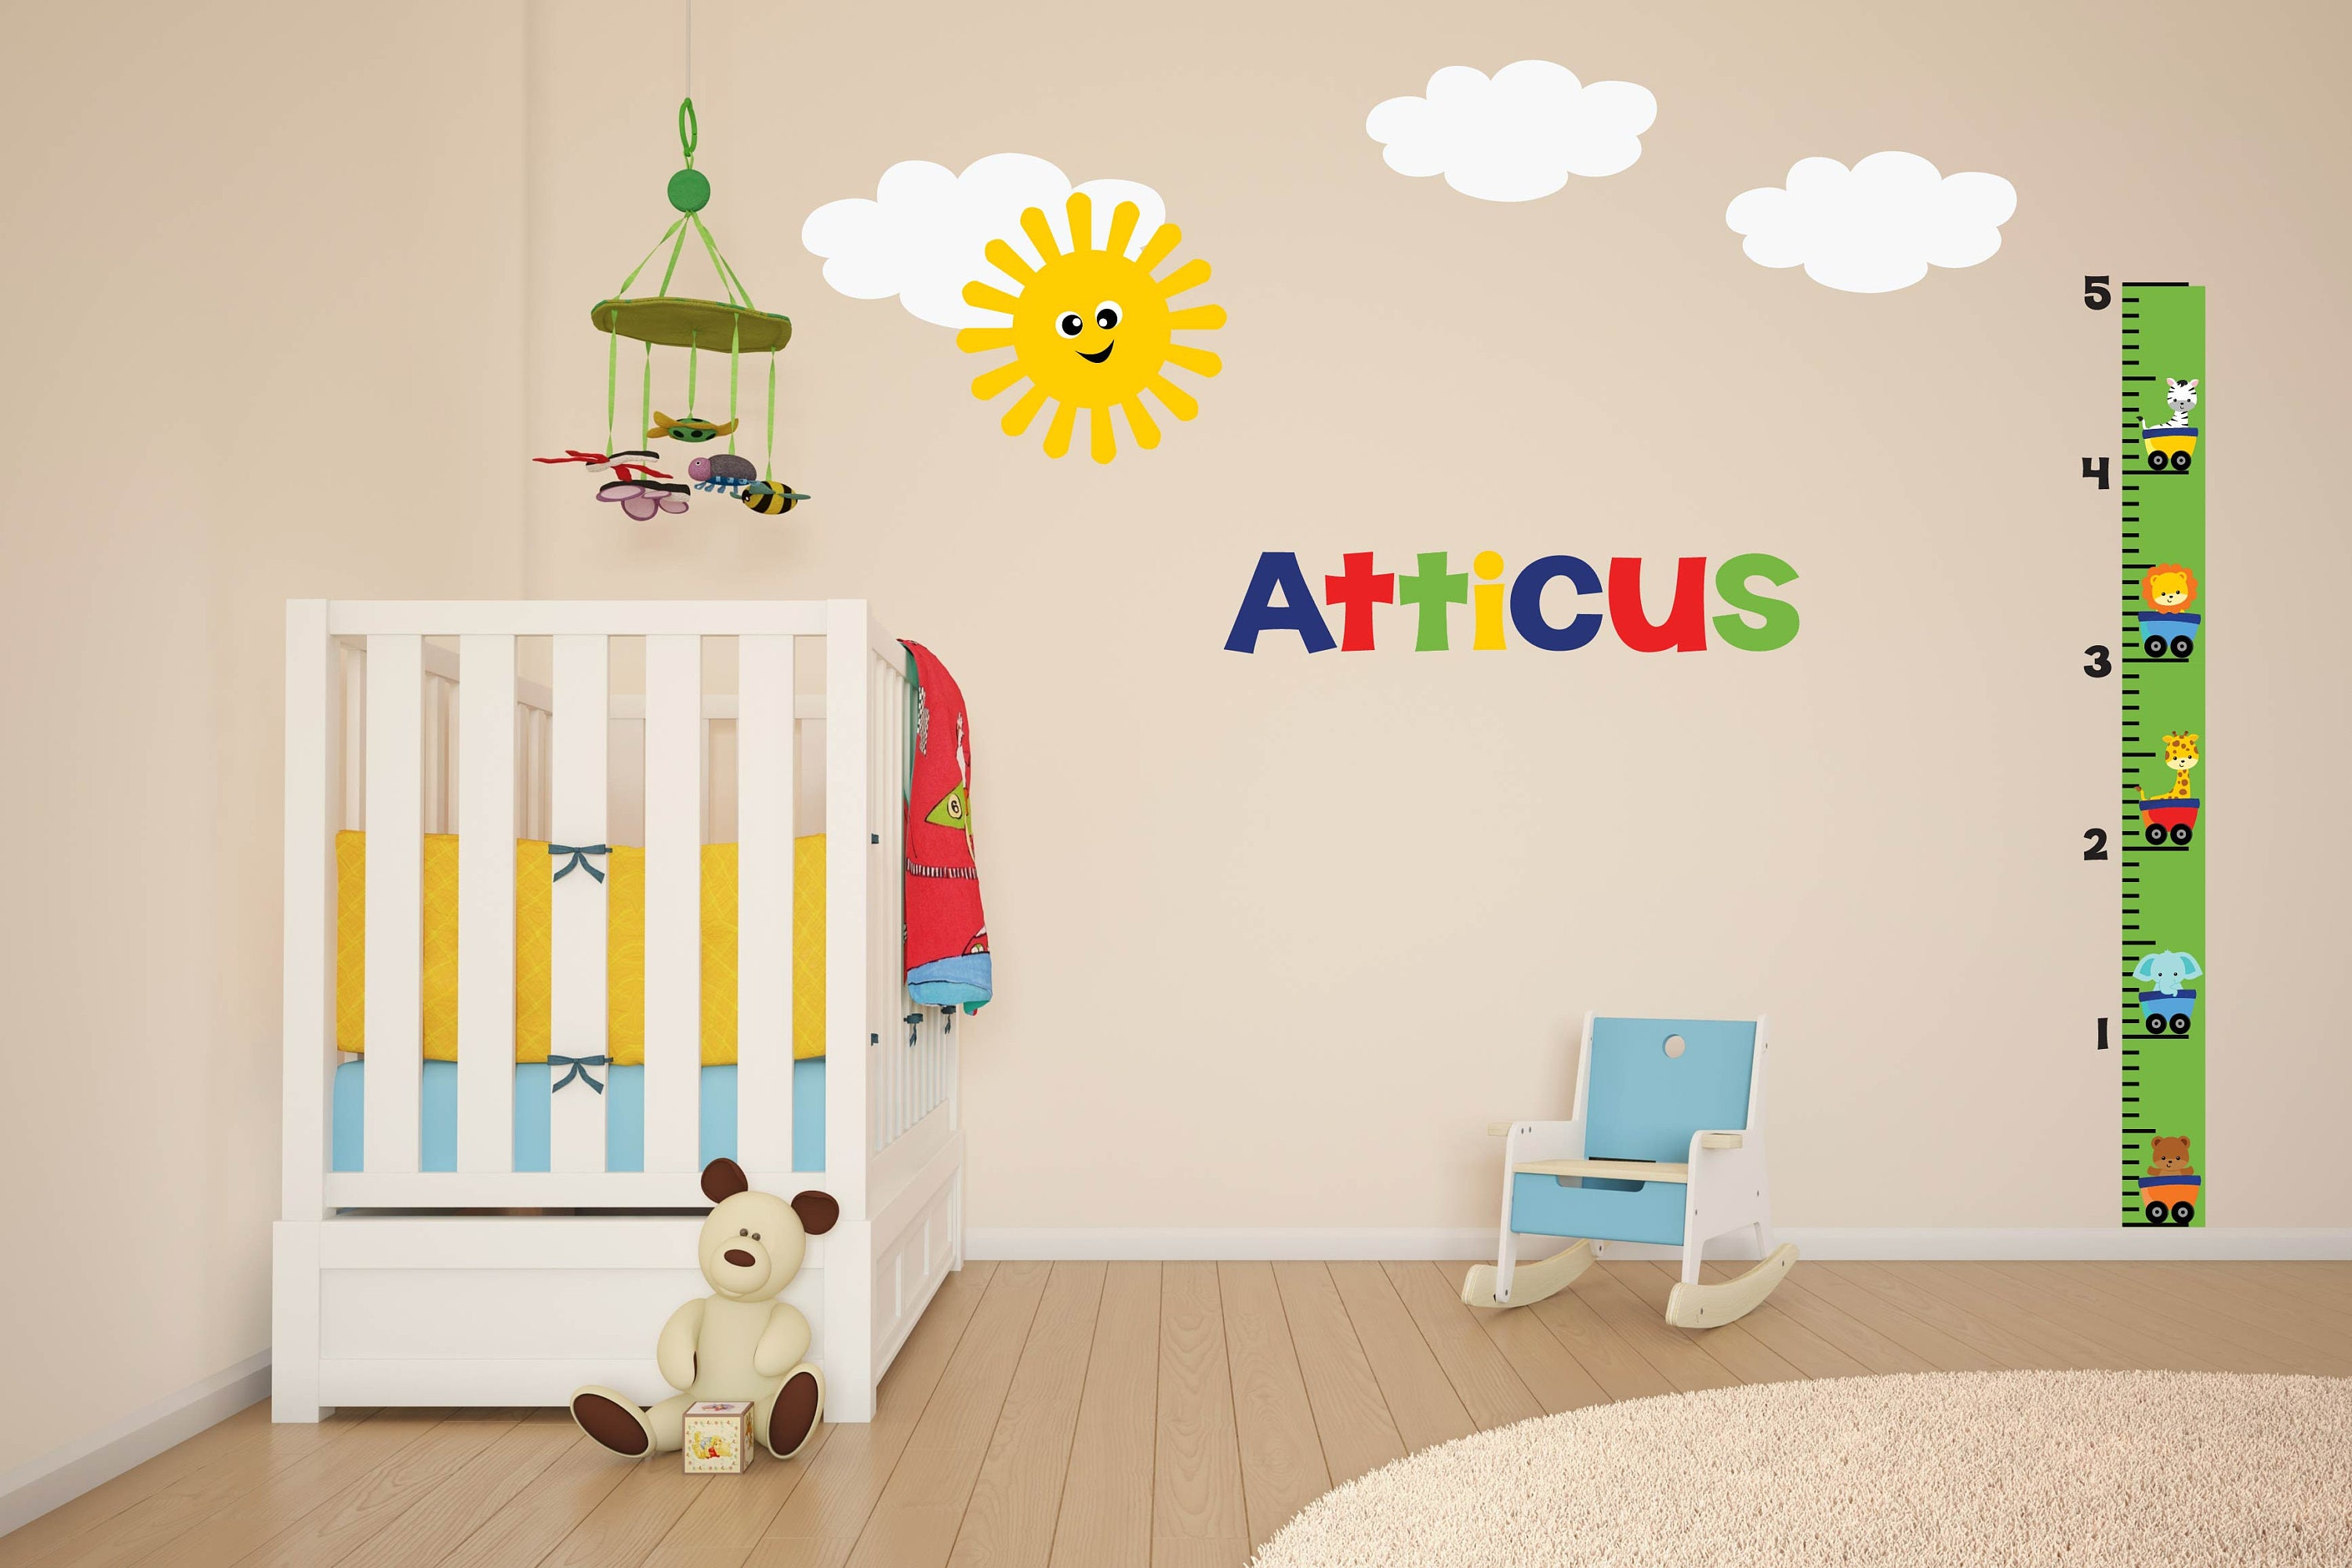 Animal growth chart growth chart wall decal name wall decal zoom nvjuhfo Image collections